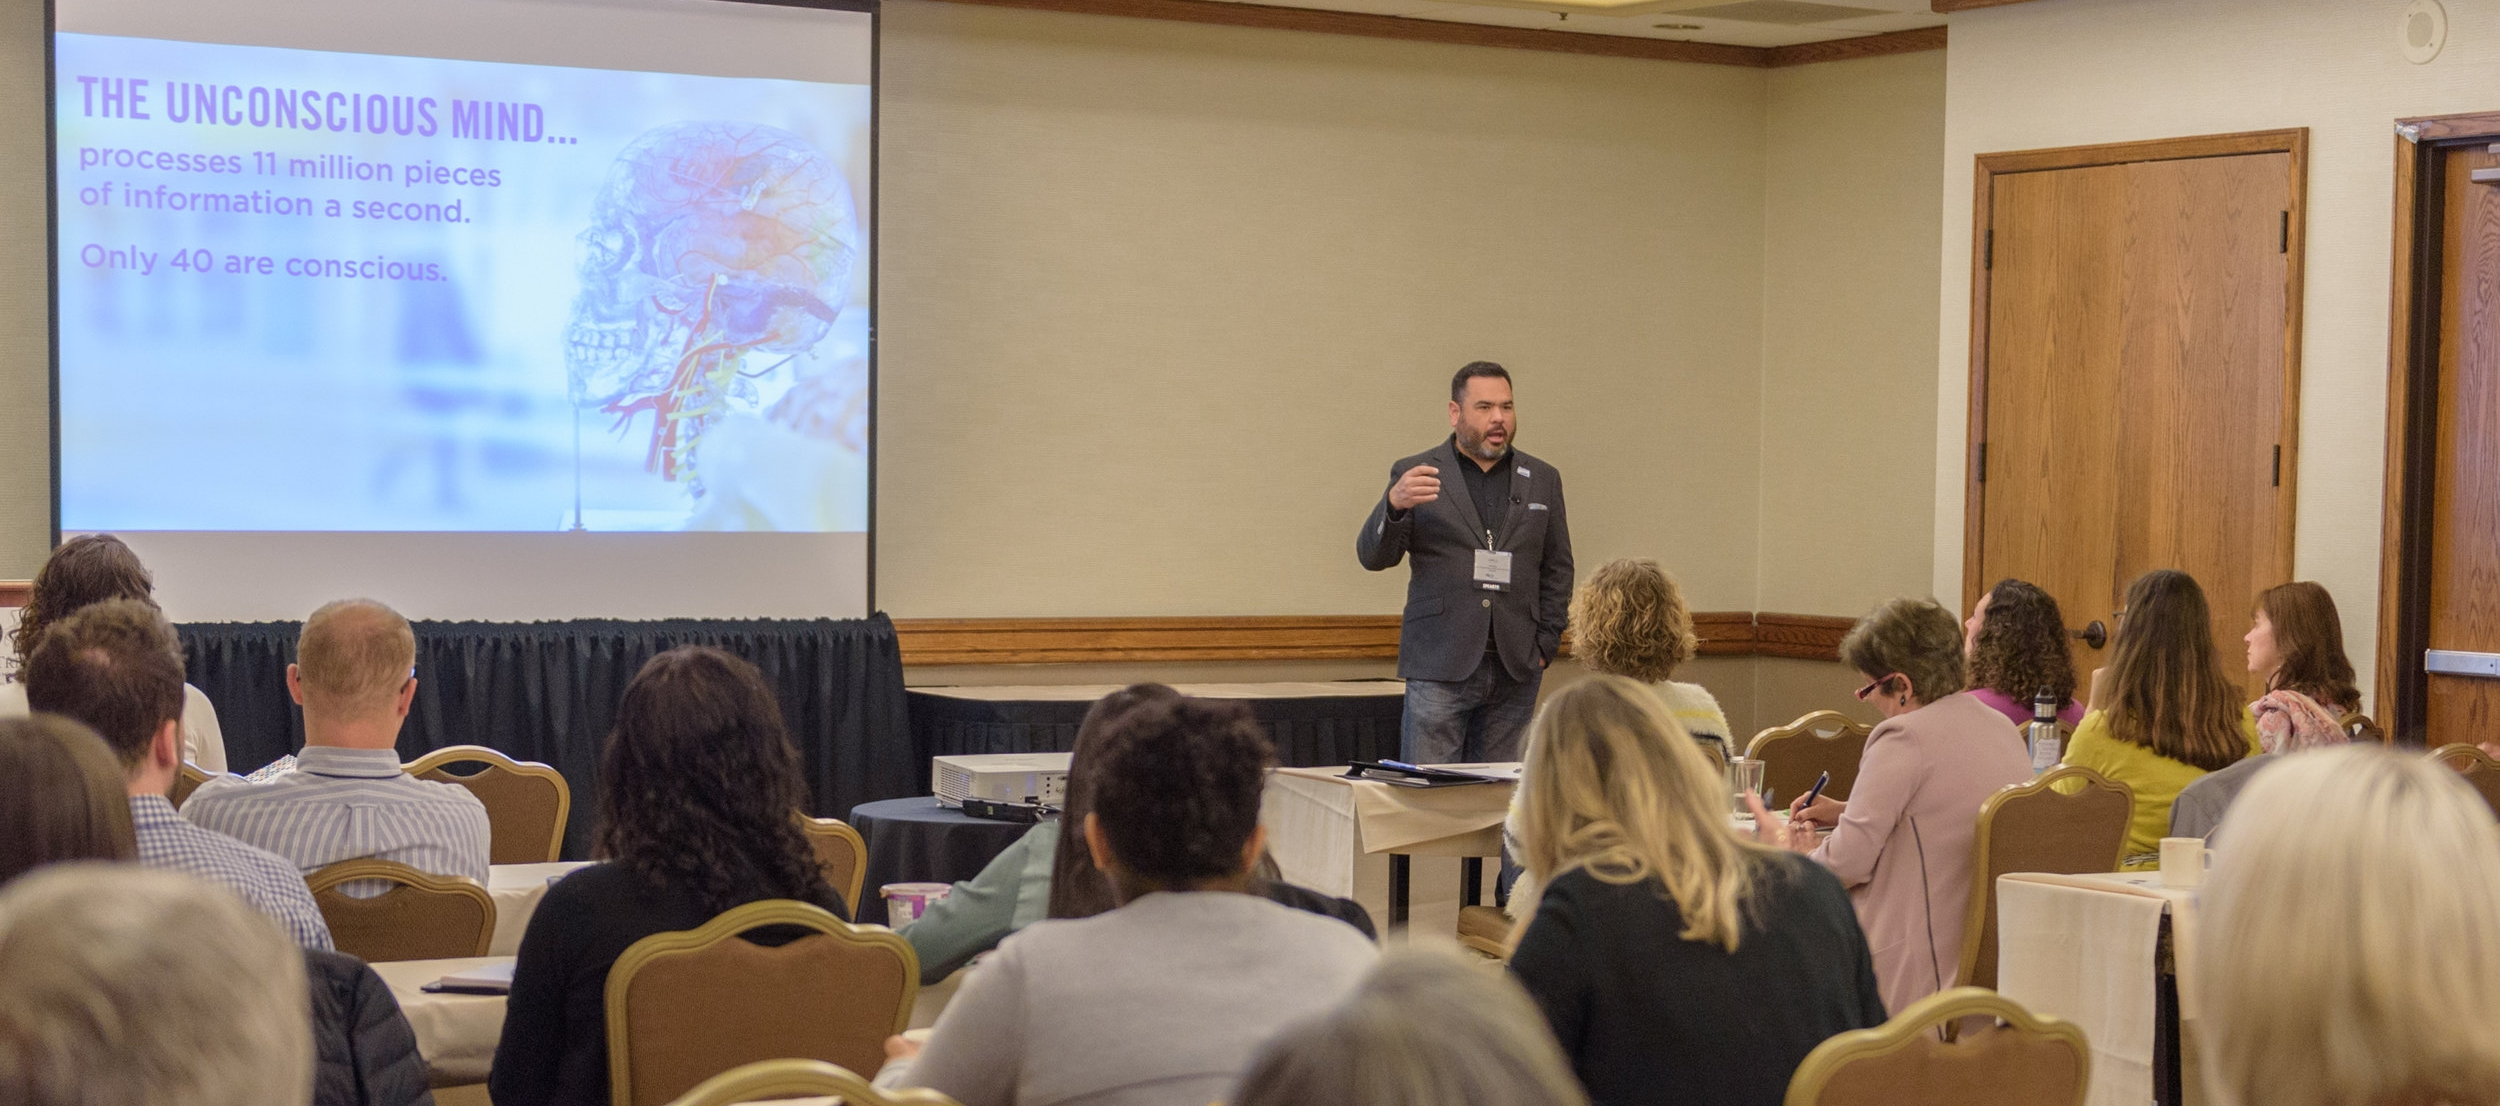 Jeff Selby has been a featured speaker at AMA PDX and PRSA Oregon events, as well as an equity consultant at PixelSpoke Agency. Photo: Andie Petkus Photography